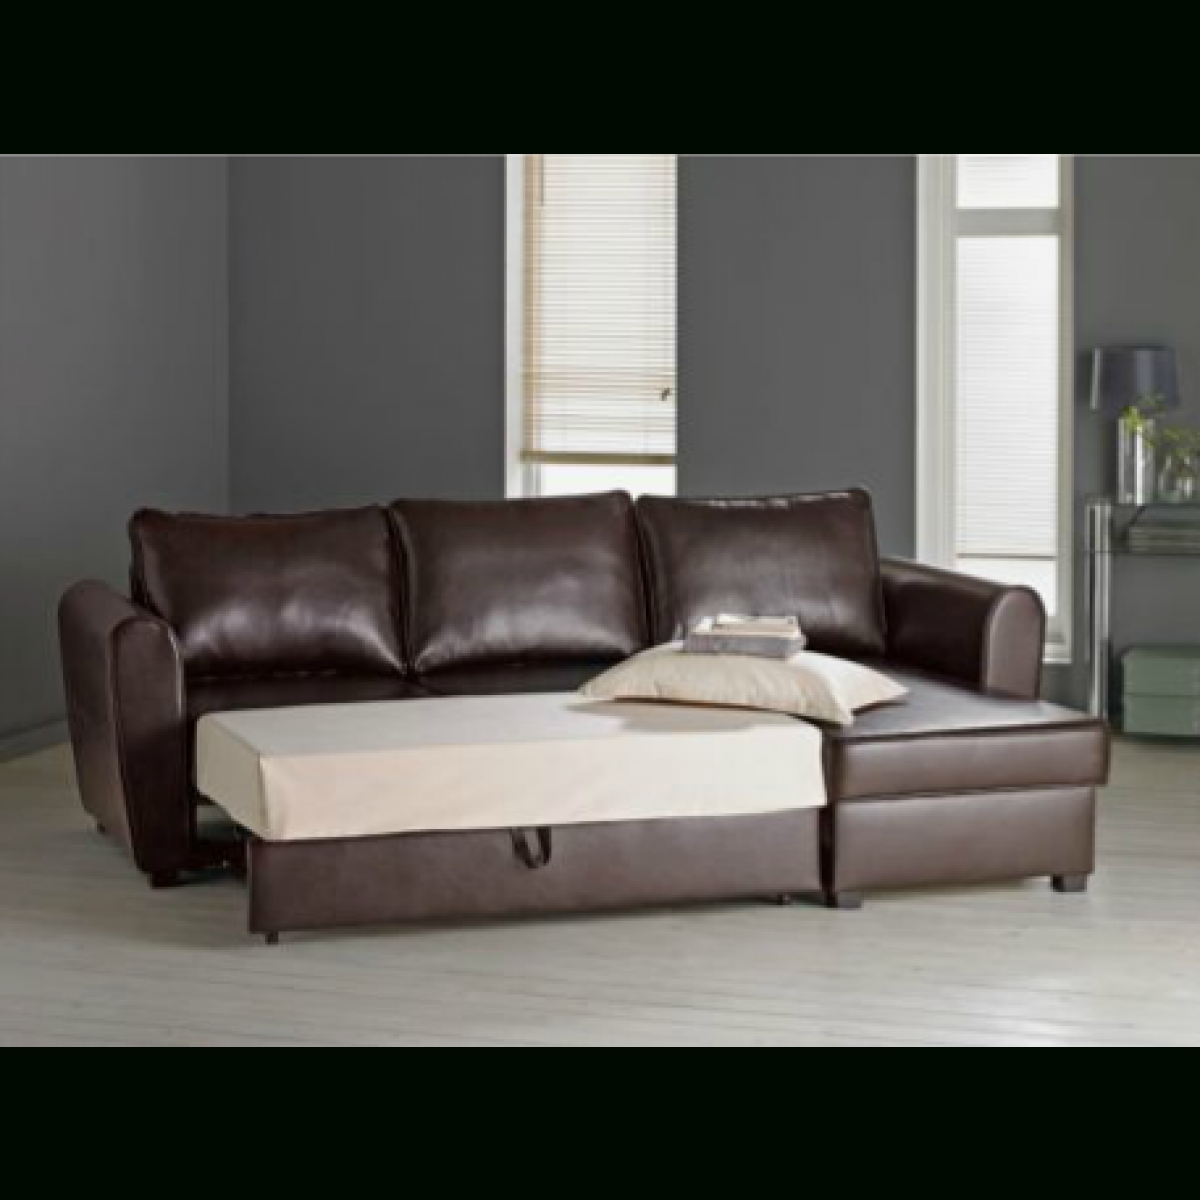 Siena Leather Effect Corner Sofa Bed With Storage  Chocolate Within Leather Sofas With Storage (Image 6 of 10)